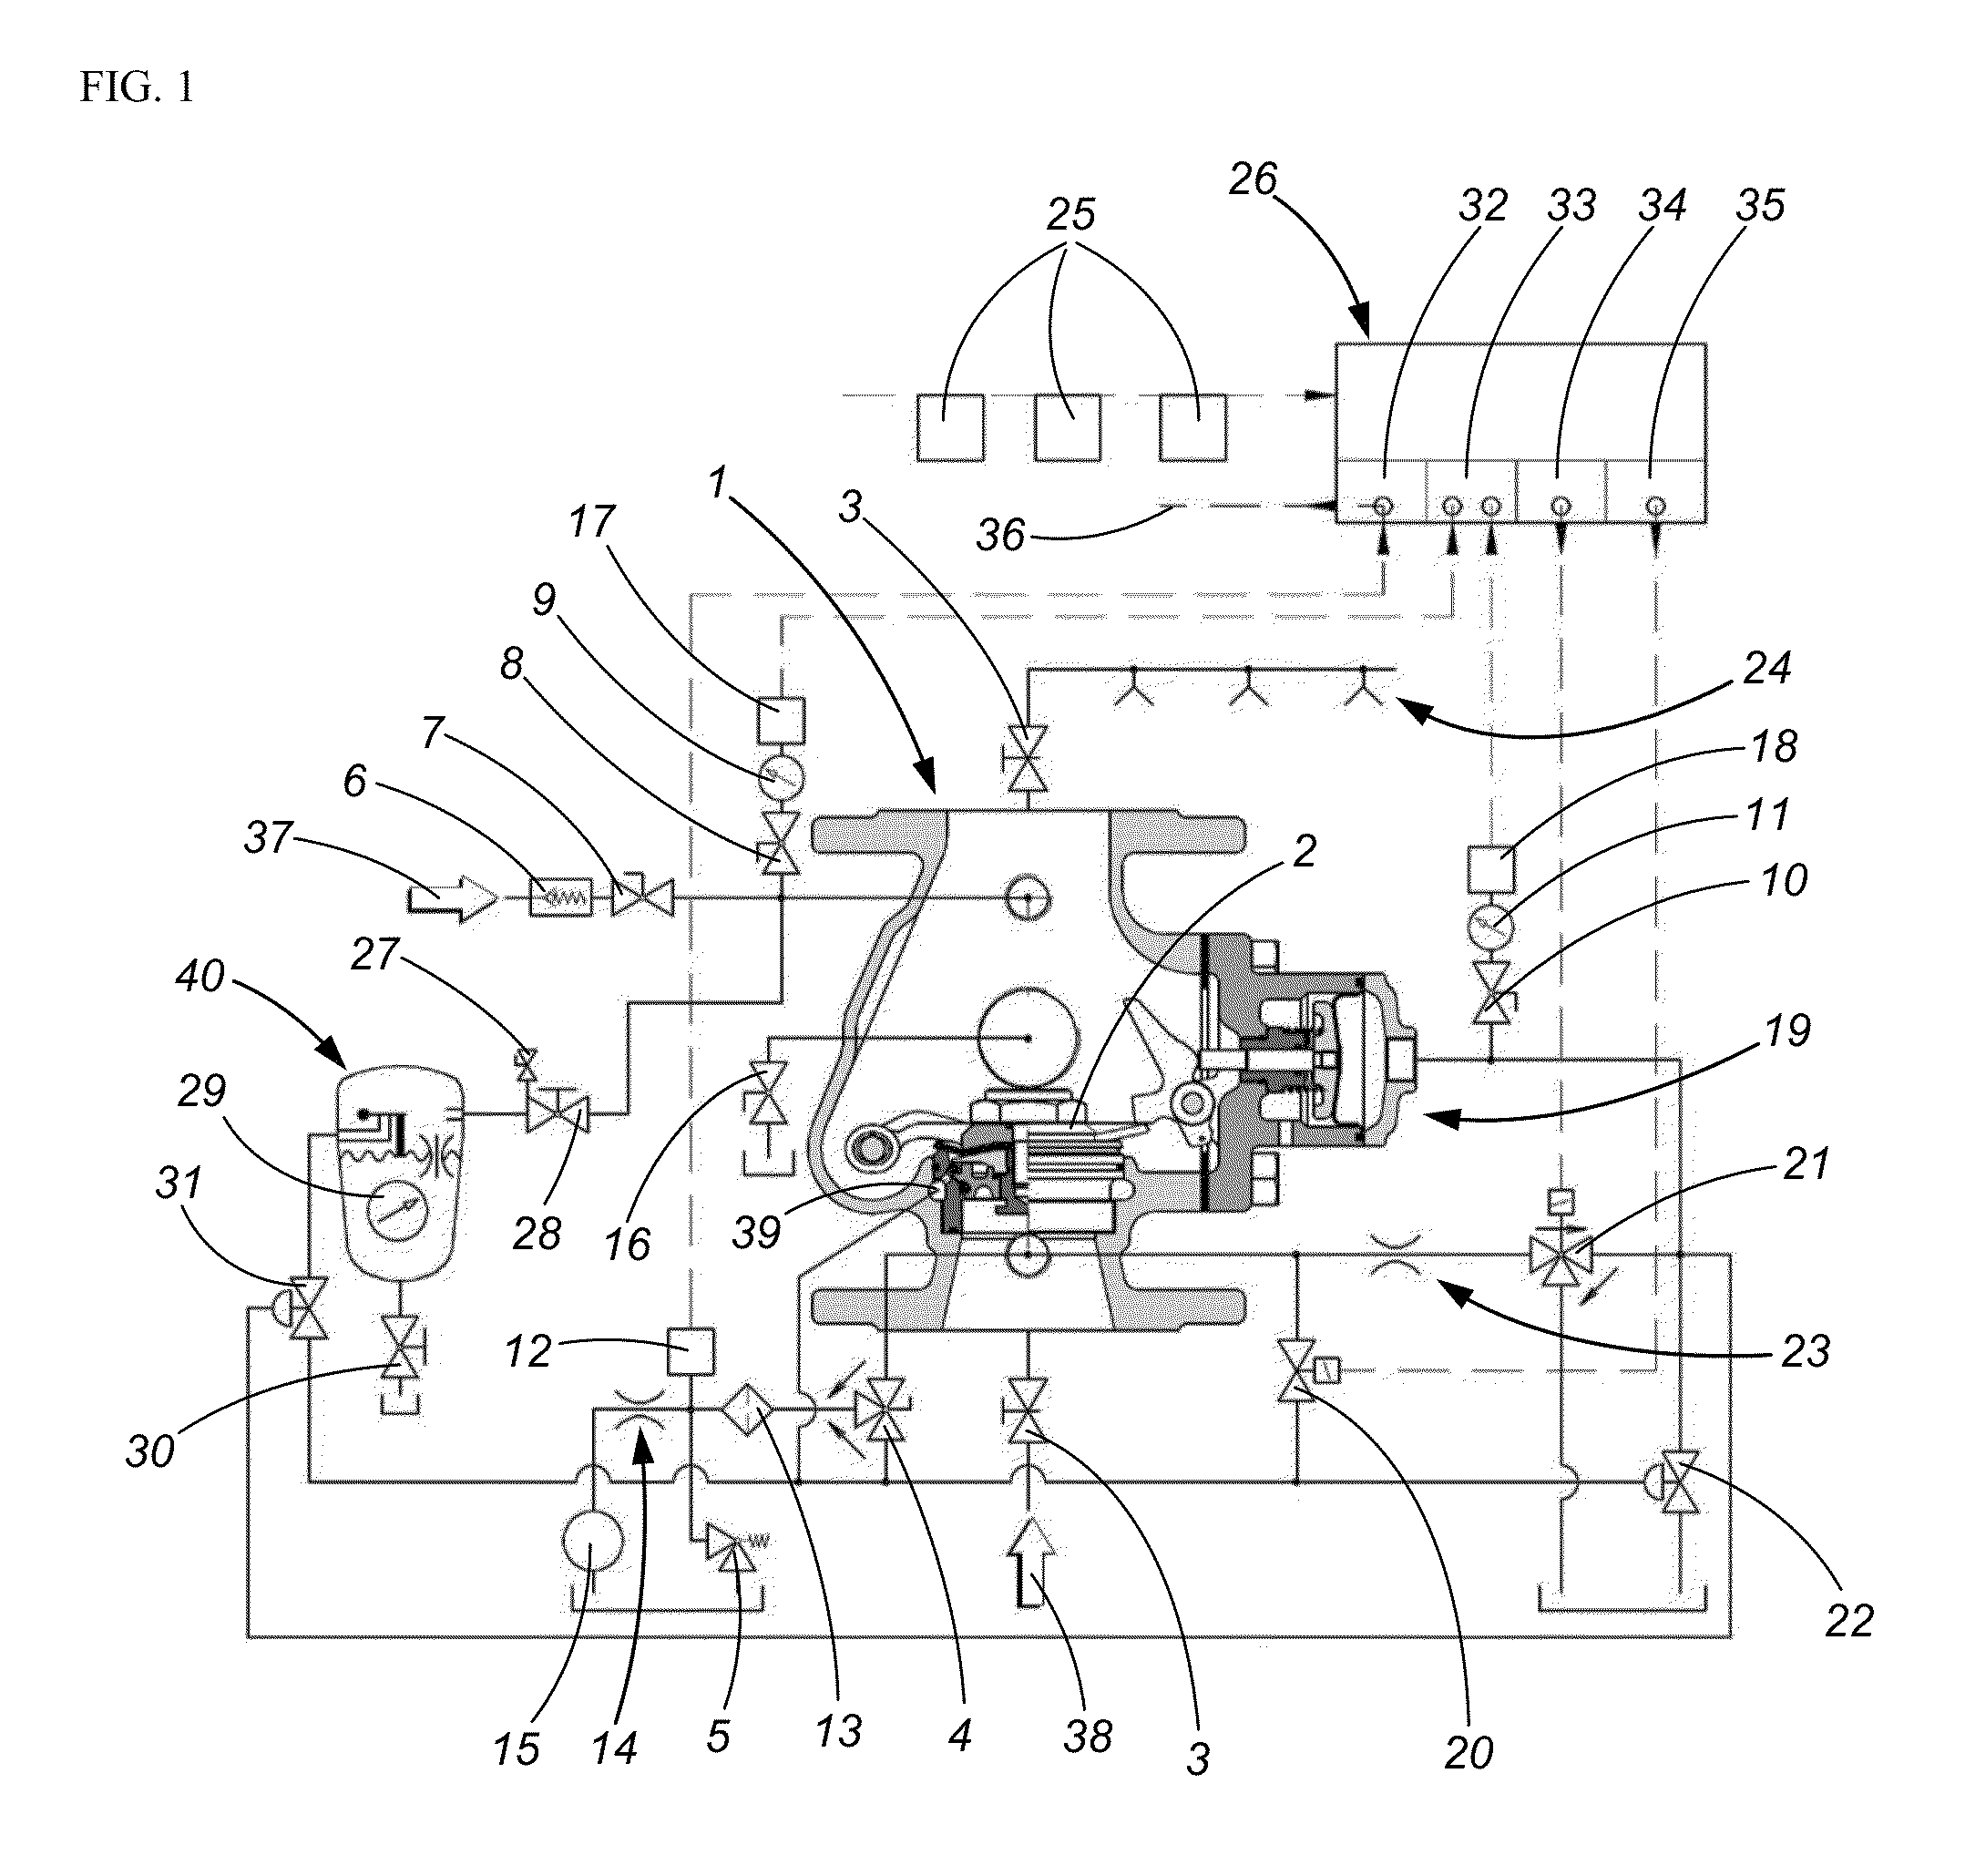 patent us20130098641 - preaction dry pipe alarm valve for a sprinkler pipework